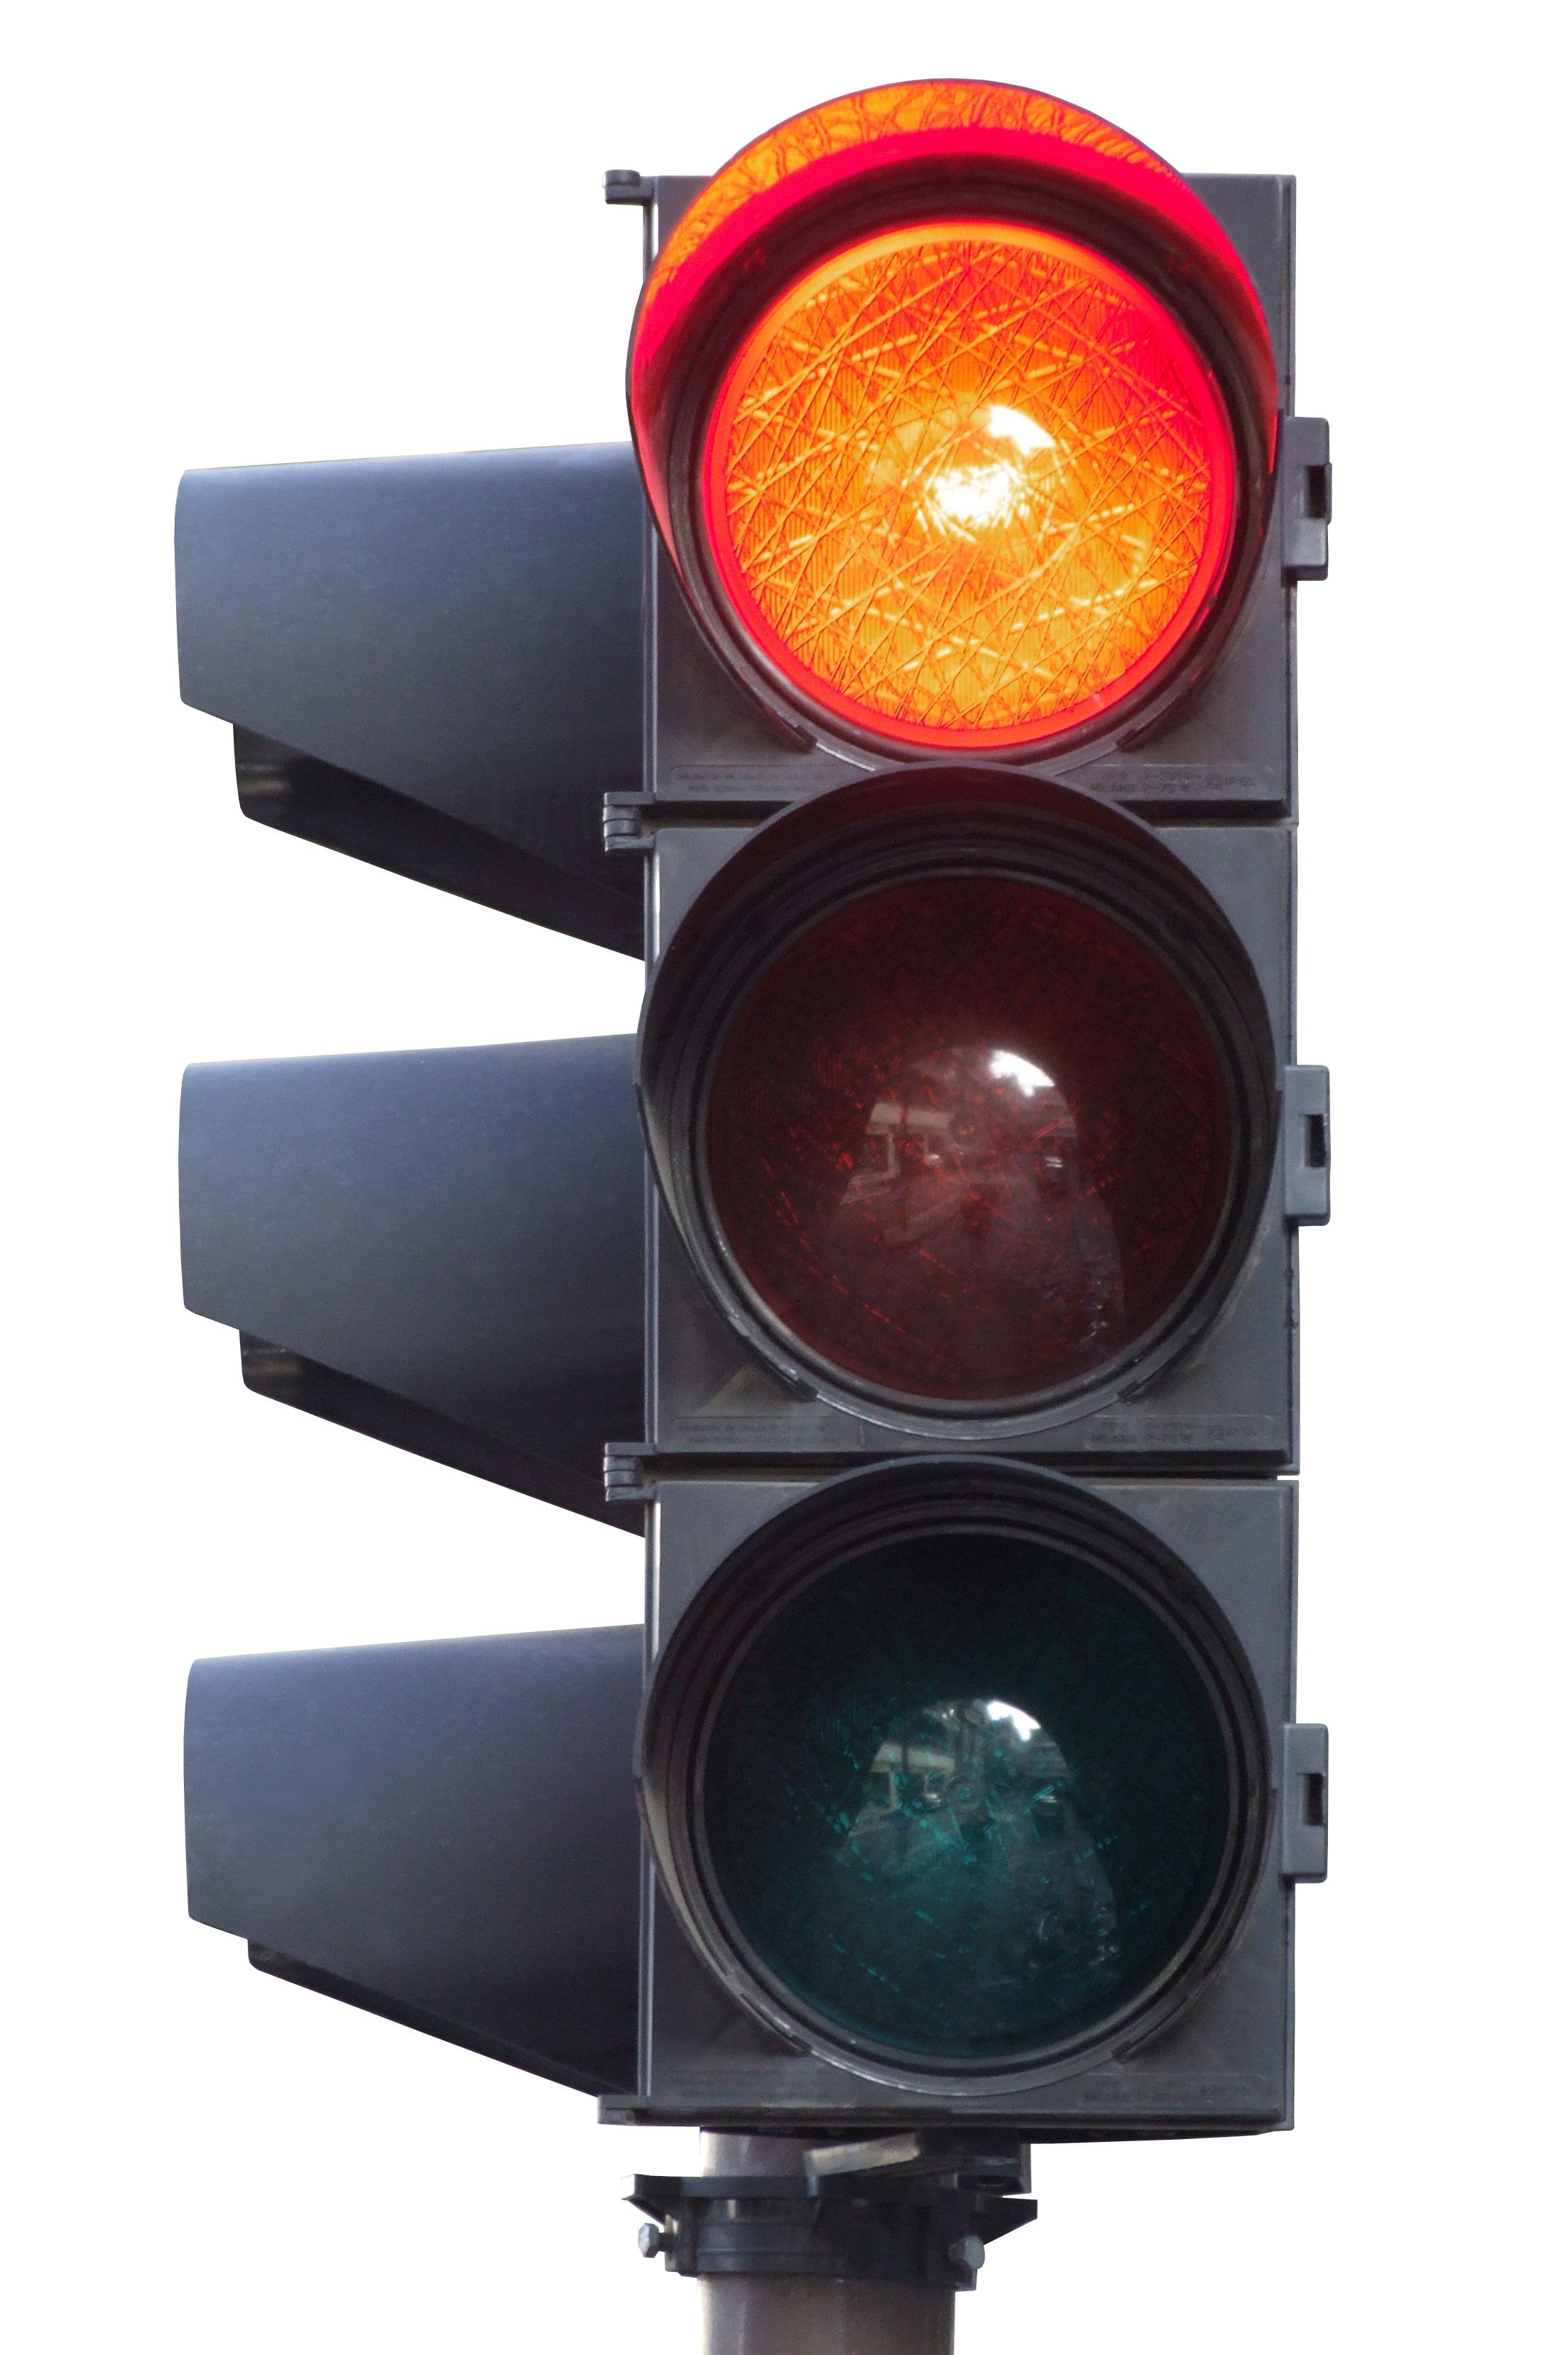 Most Of The World S Traffic Signals Currently Use Incandescent Halogen Bulbs Which Are In The Majority Being Used Traffic Light Lights Traffic Light Pictures